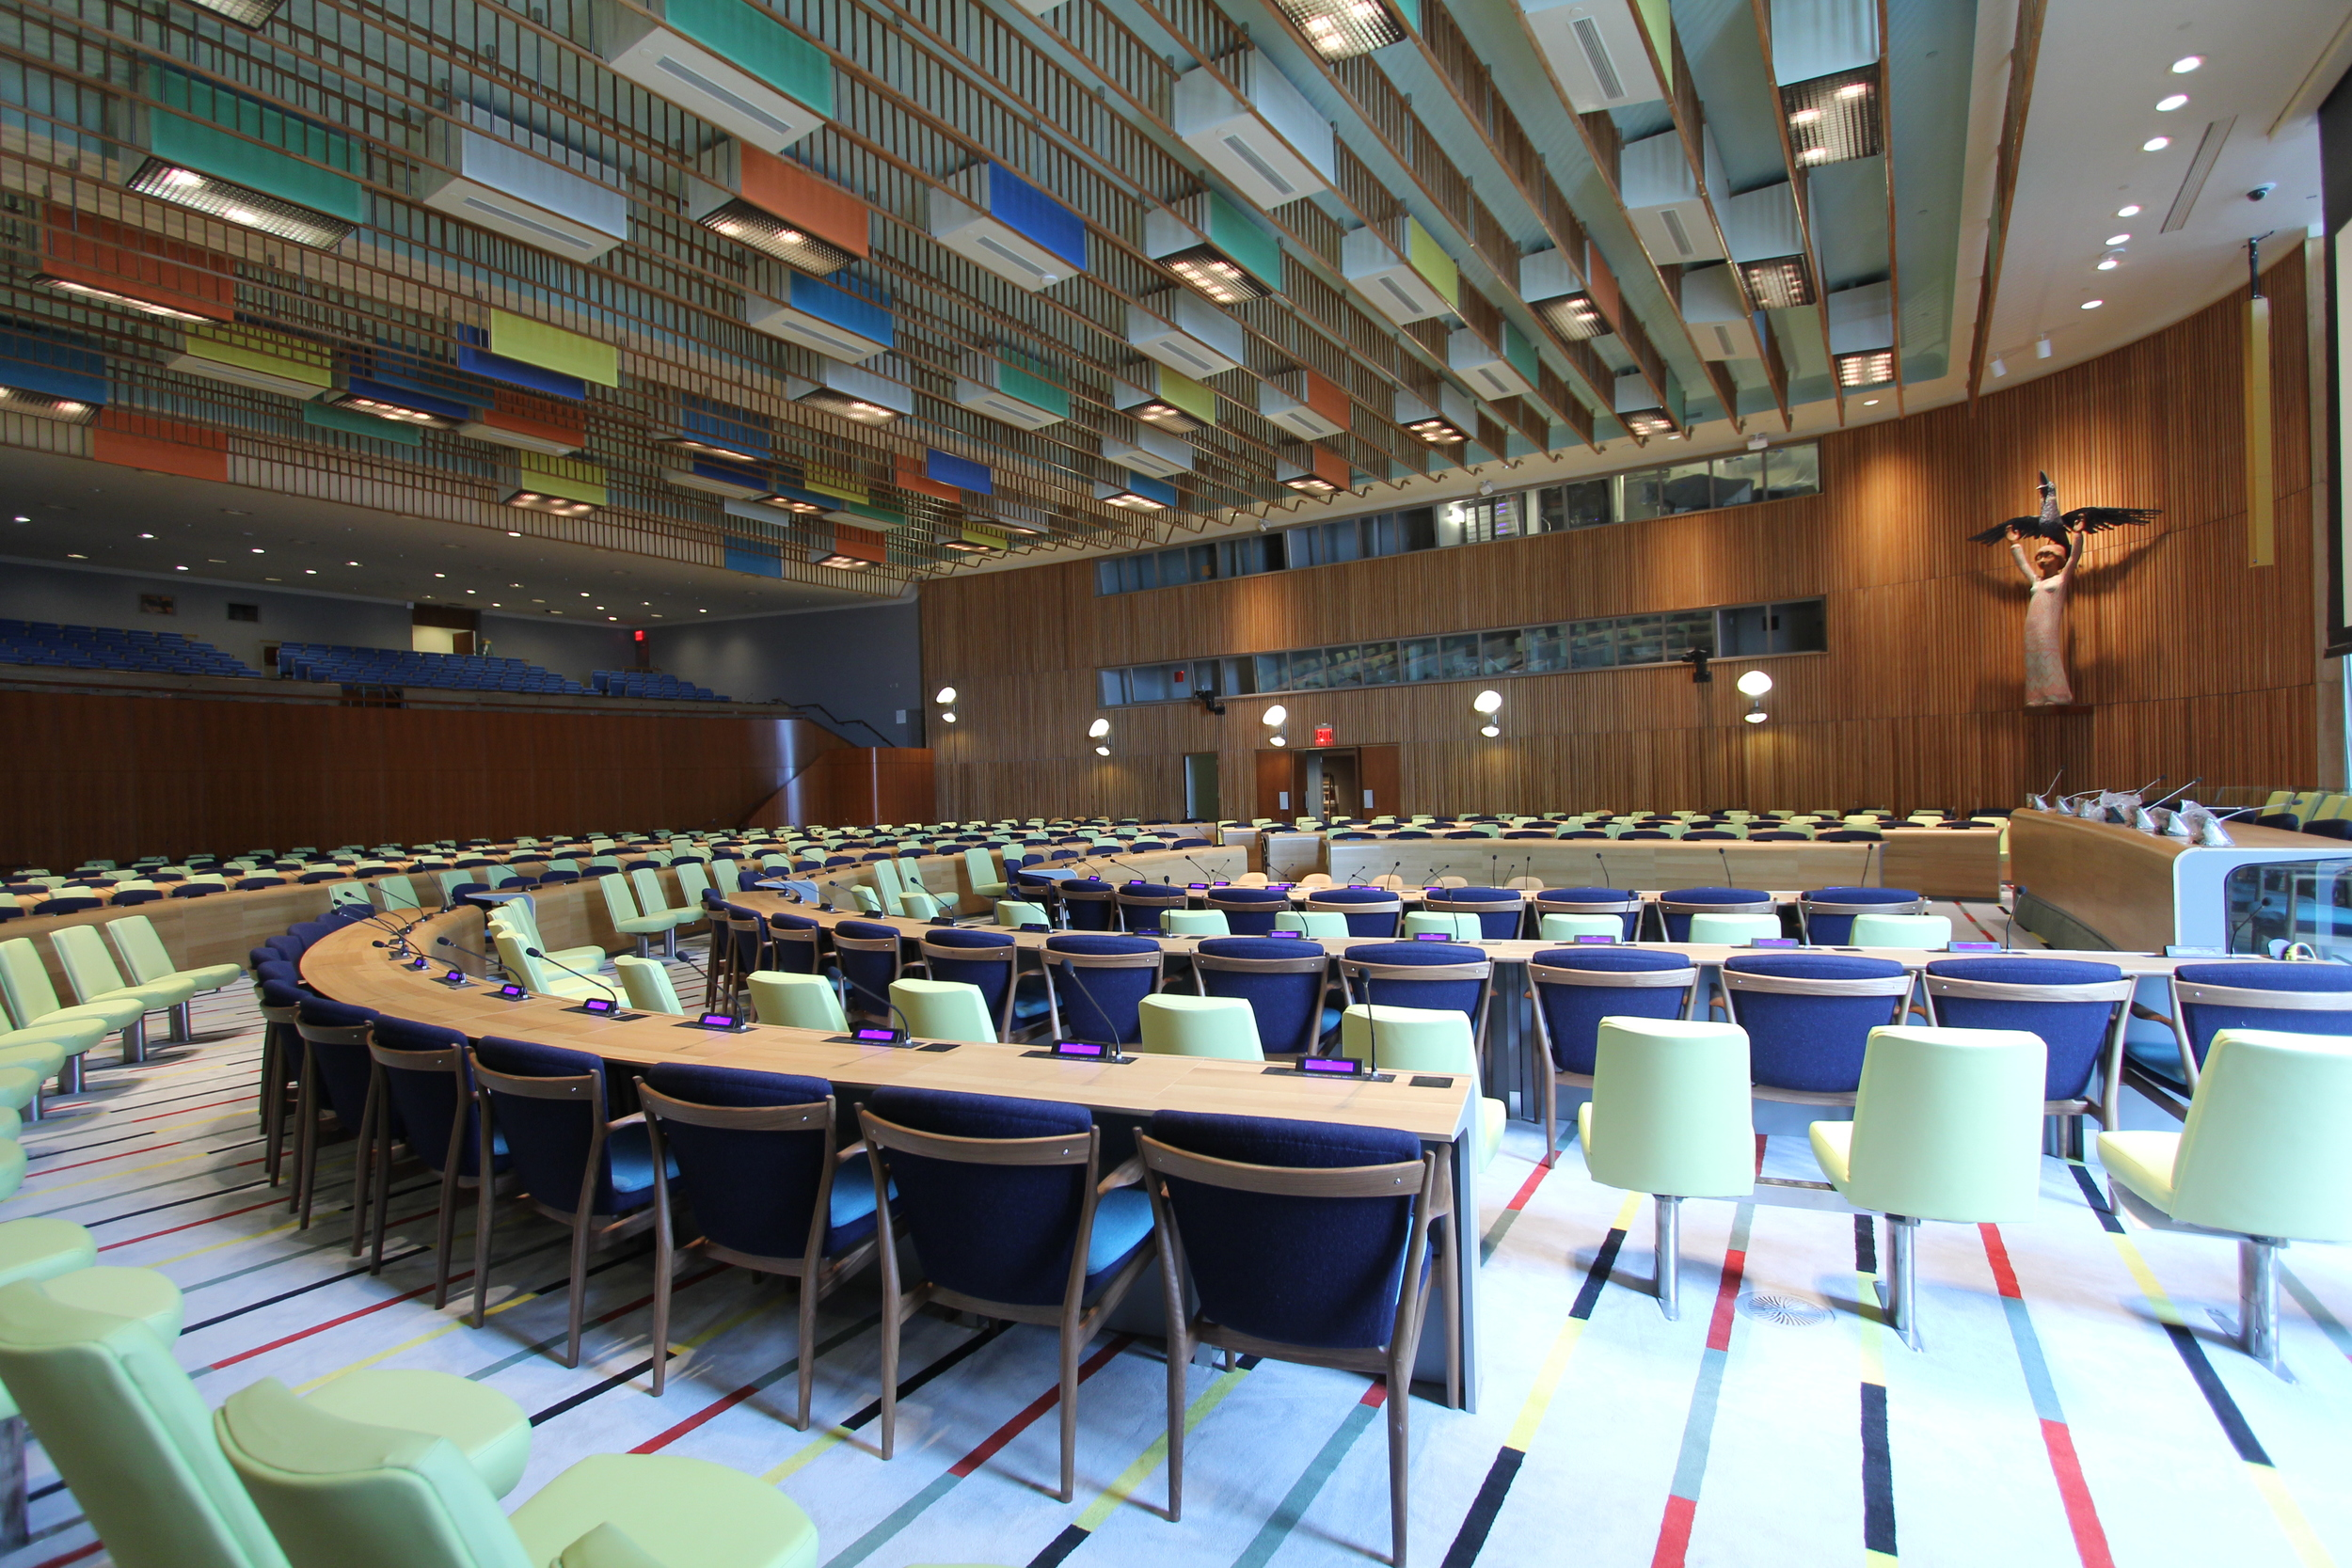 United Nations Trusteeship Council Chamber